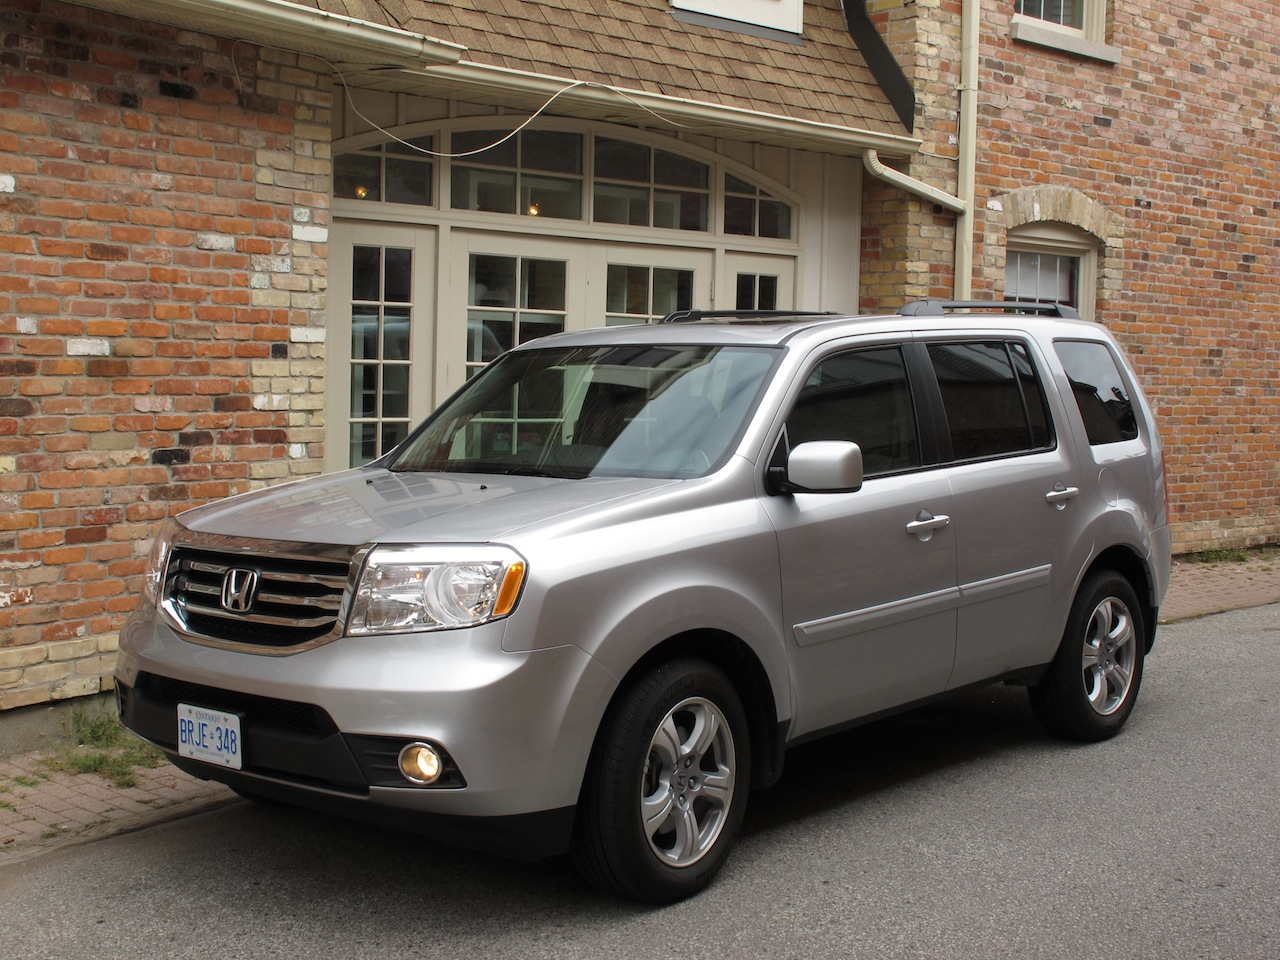 Superb 2014 Honda Pilot Silver Front Side View